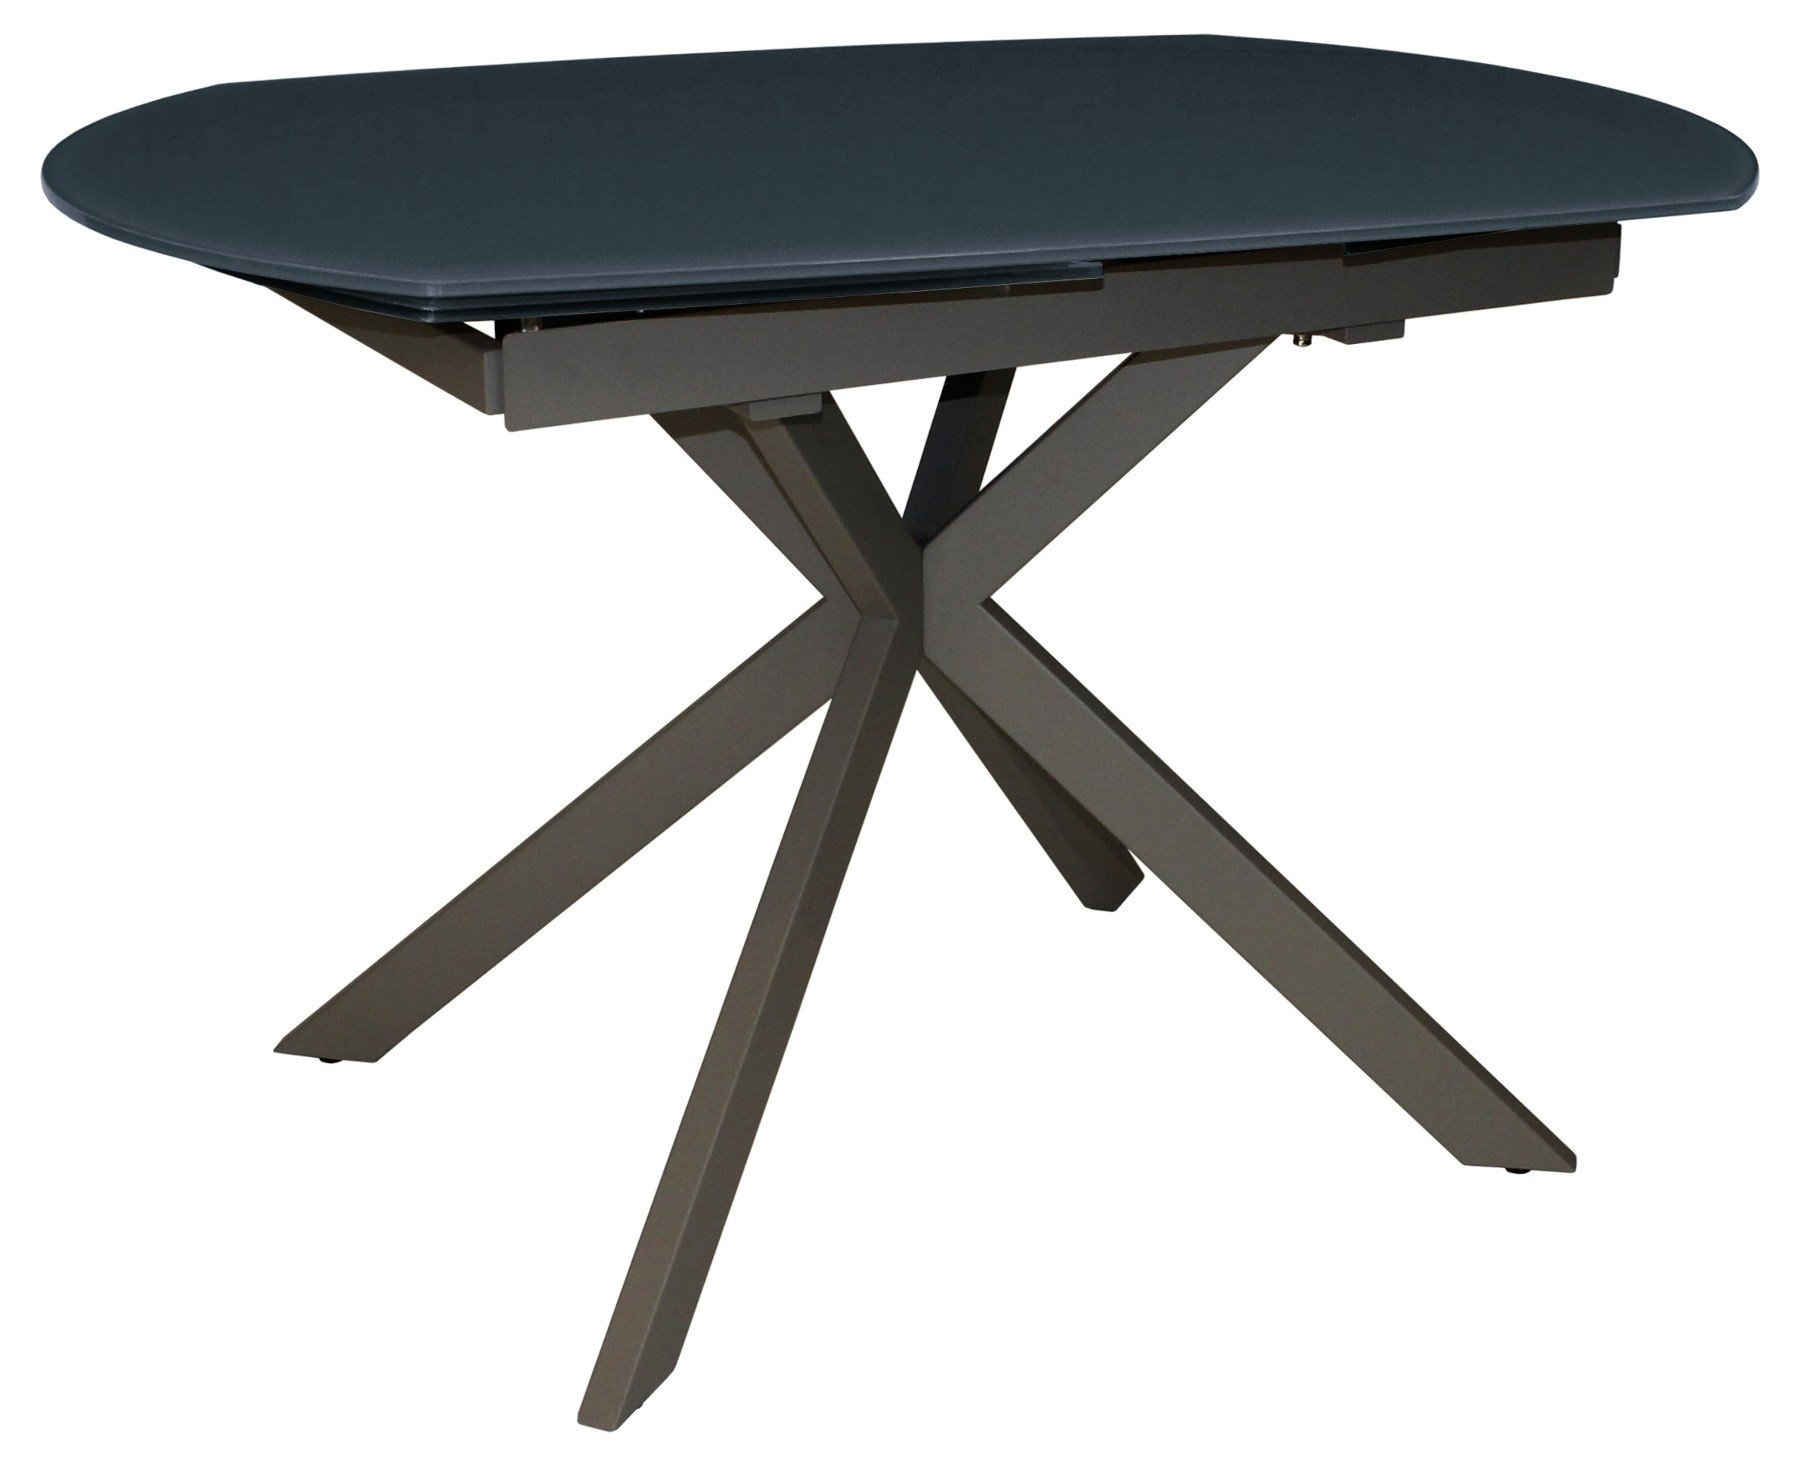 CONTEMPORARY Motion Extending Dining Table - Grey